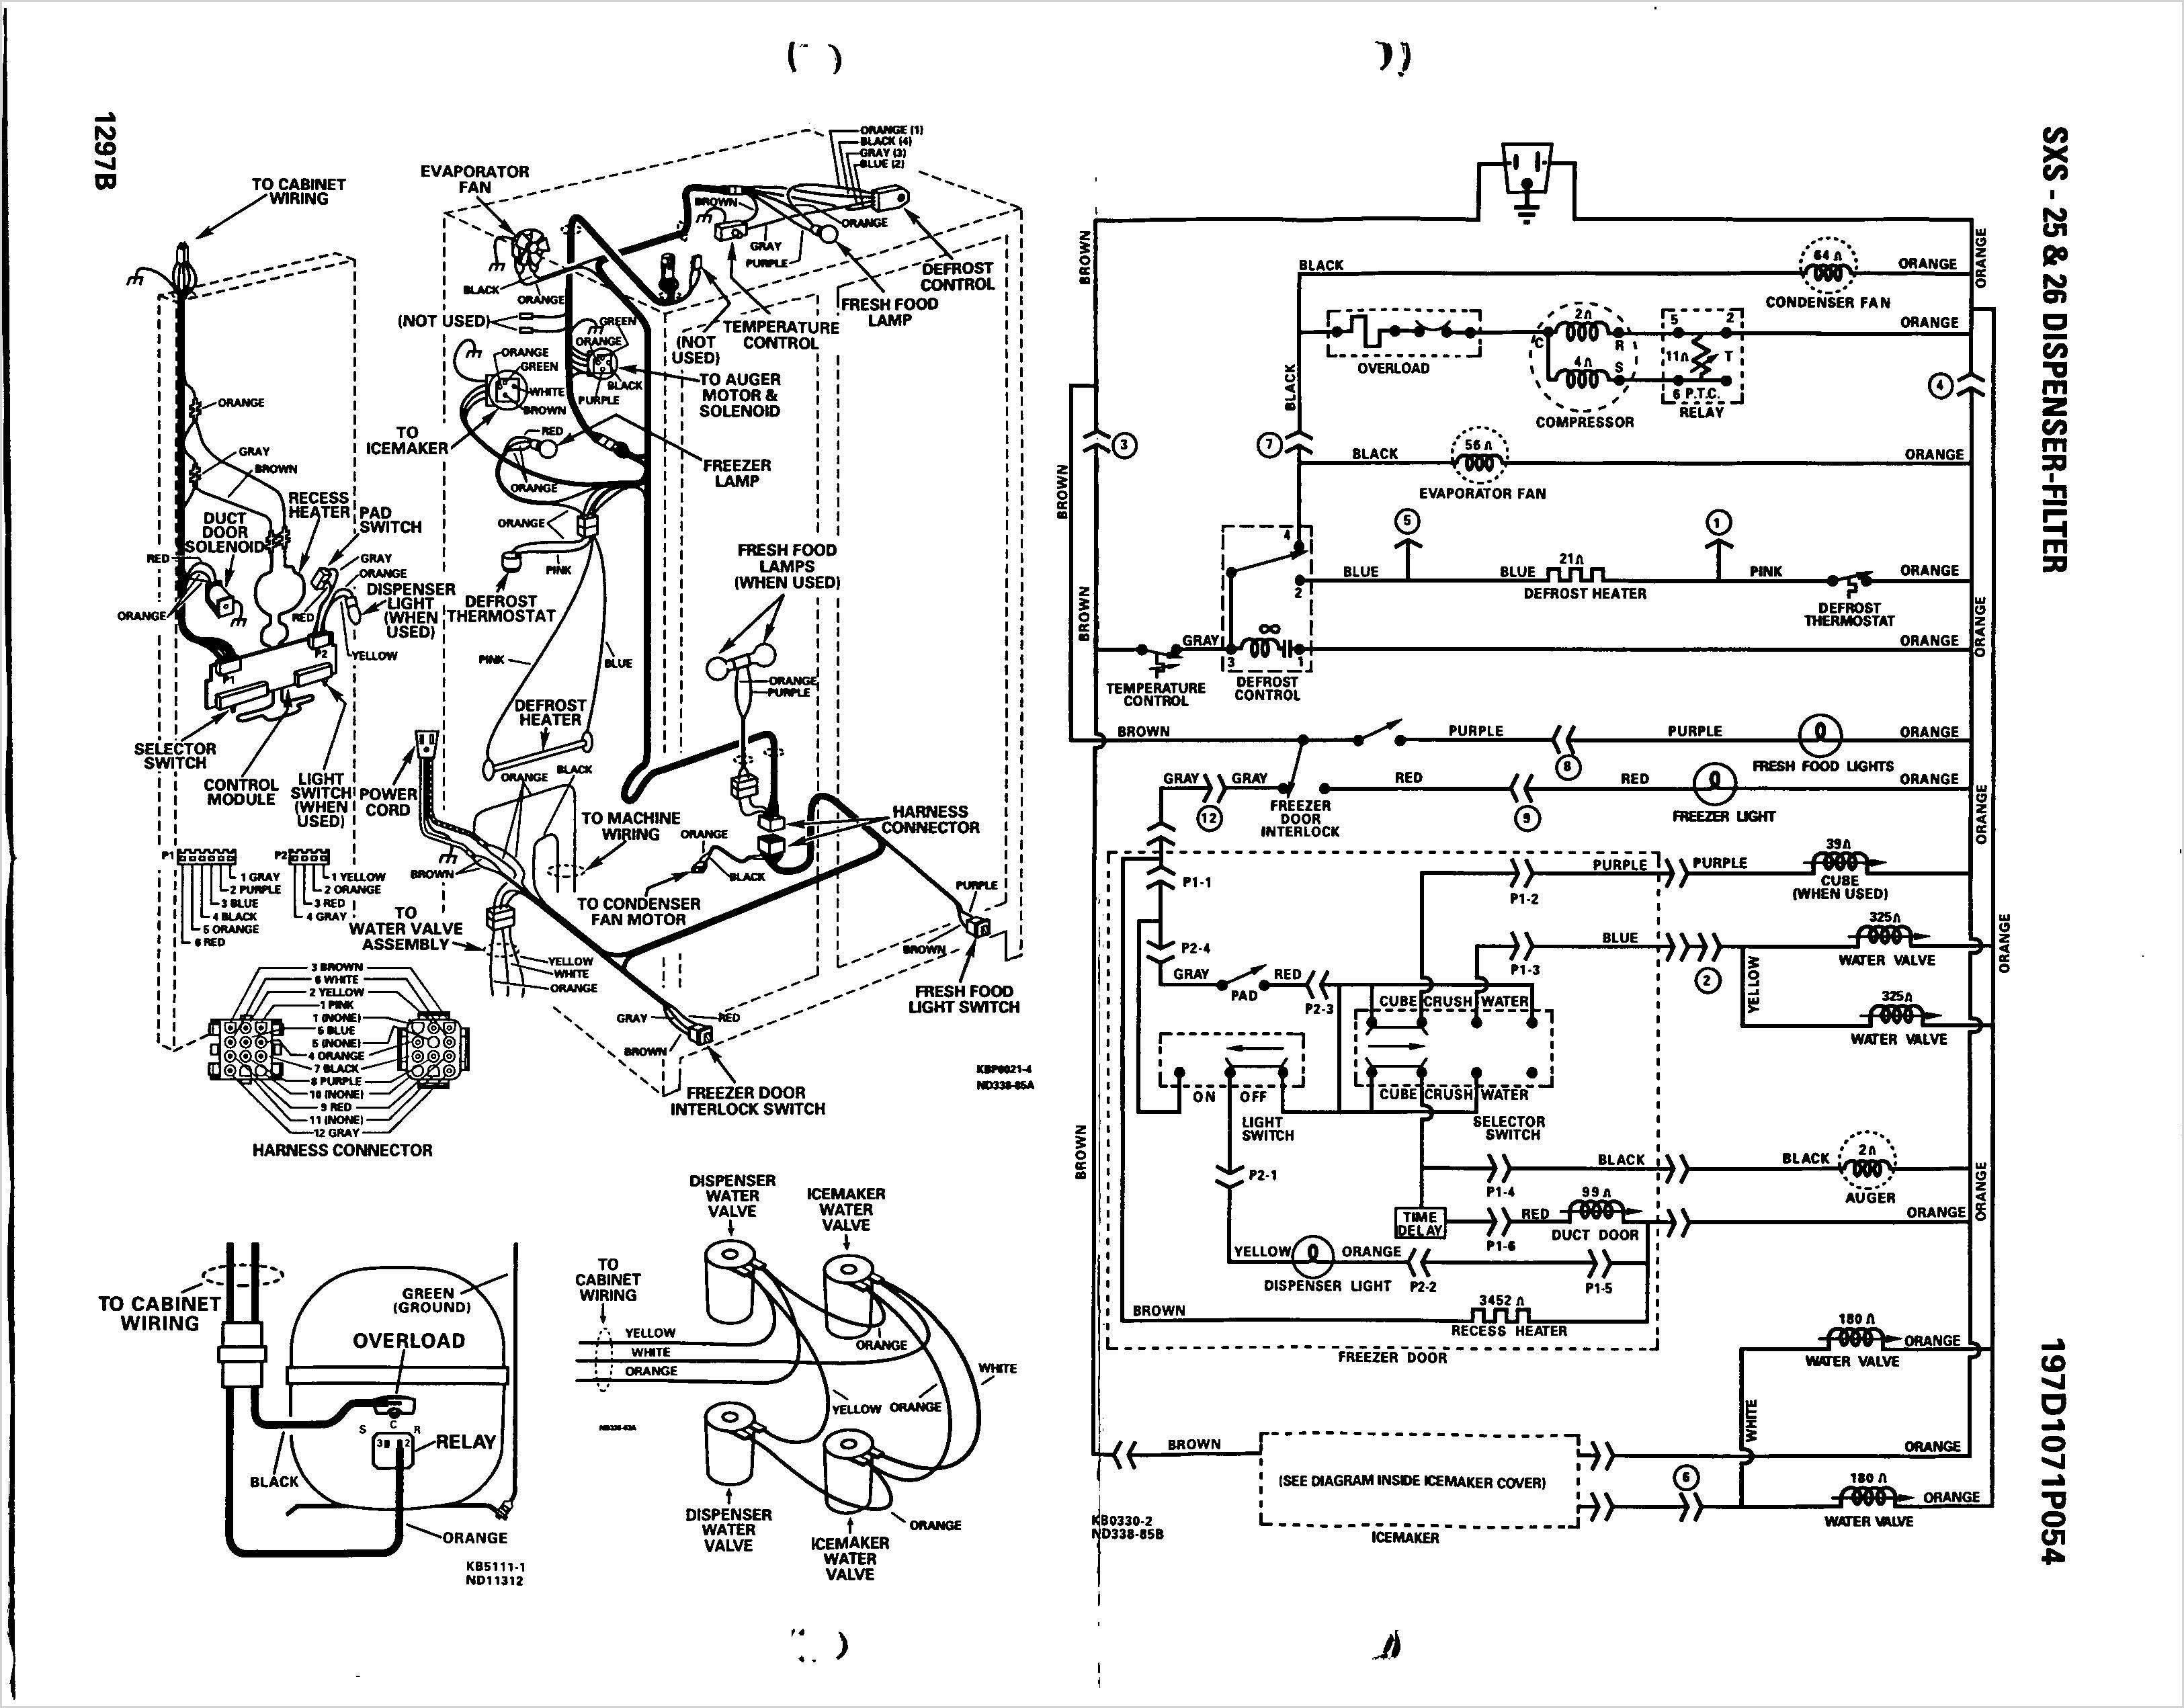 Awesome Ge Electric Motor Wiring Diagram | Whirlpool washer, Electrical  wiring diagram, Washing machine and dryer | Ge Wiring Diagram For Dishwasher |  | Pinterest